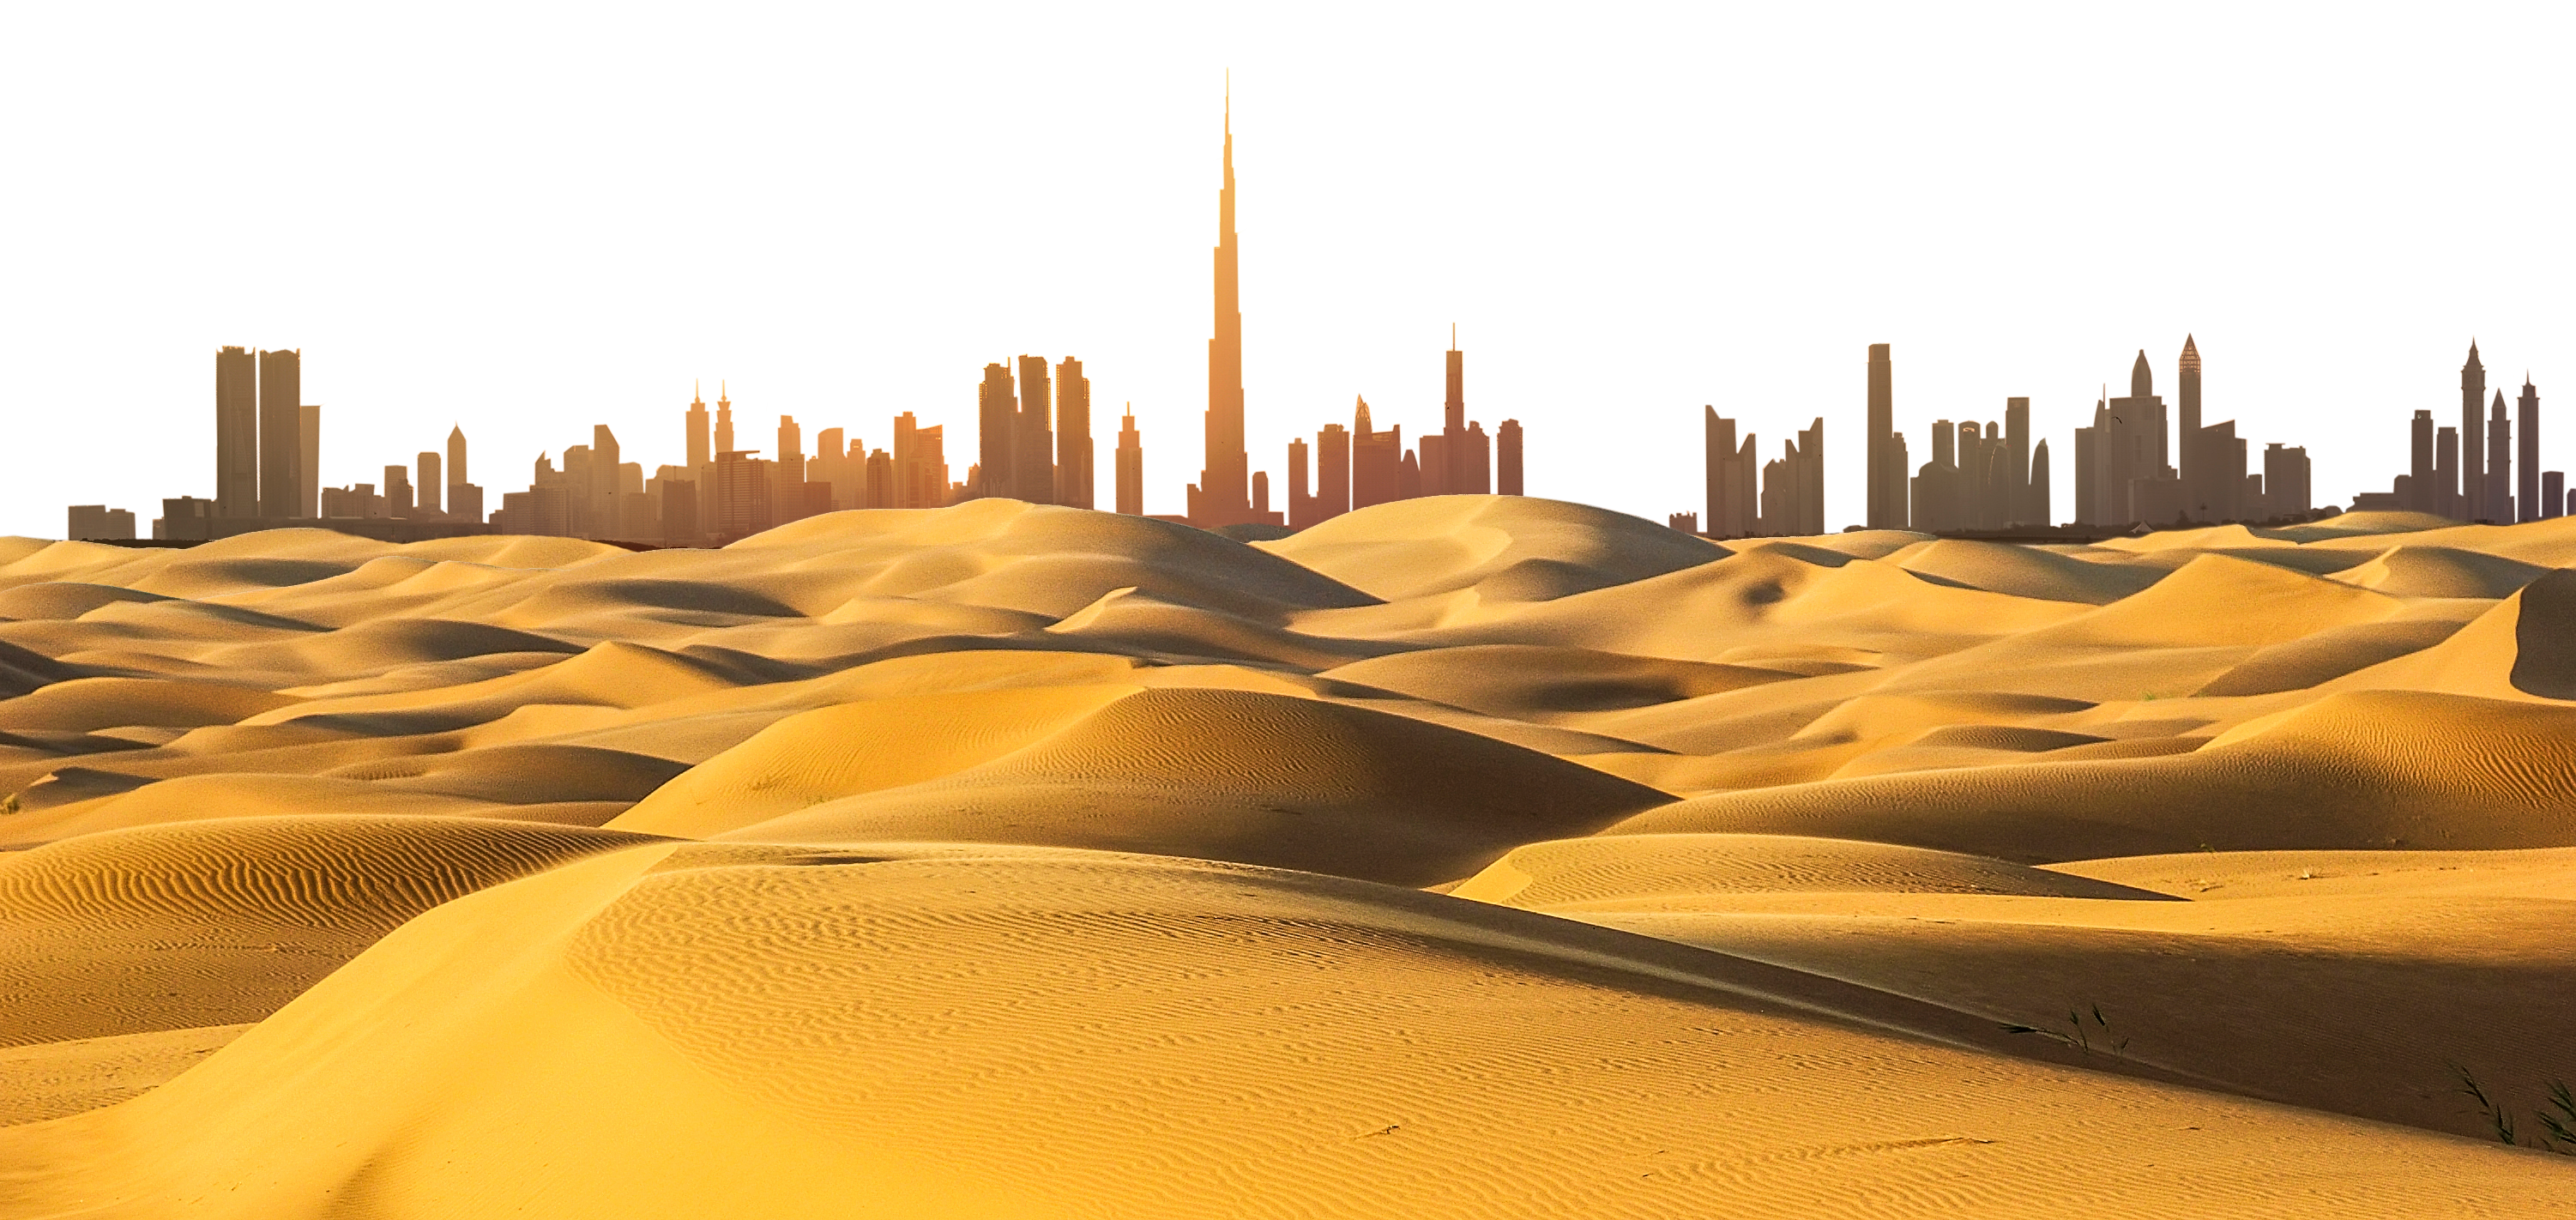 The skyline of Dubai, UAE (WaitForLight/Shutterstock)